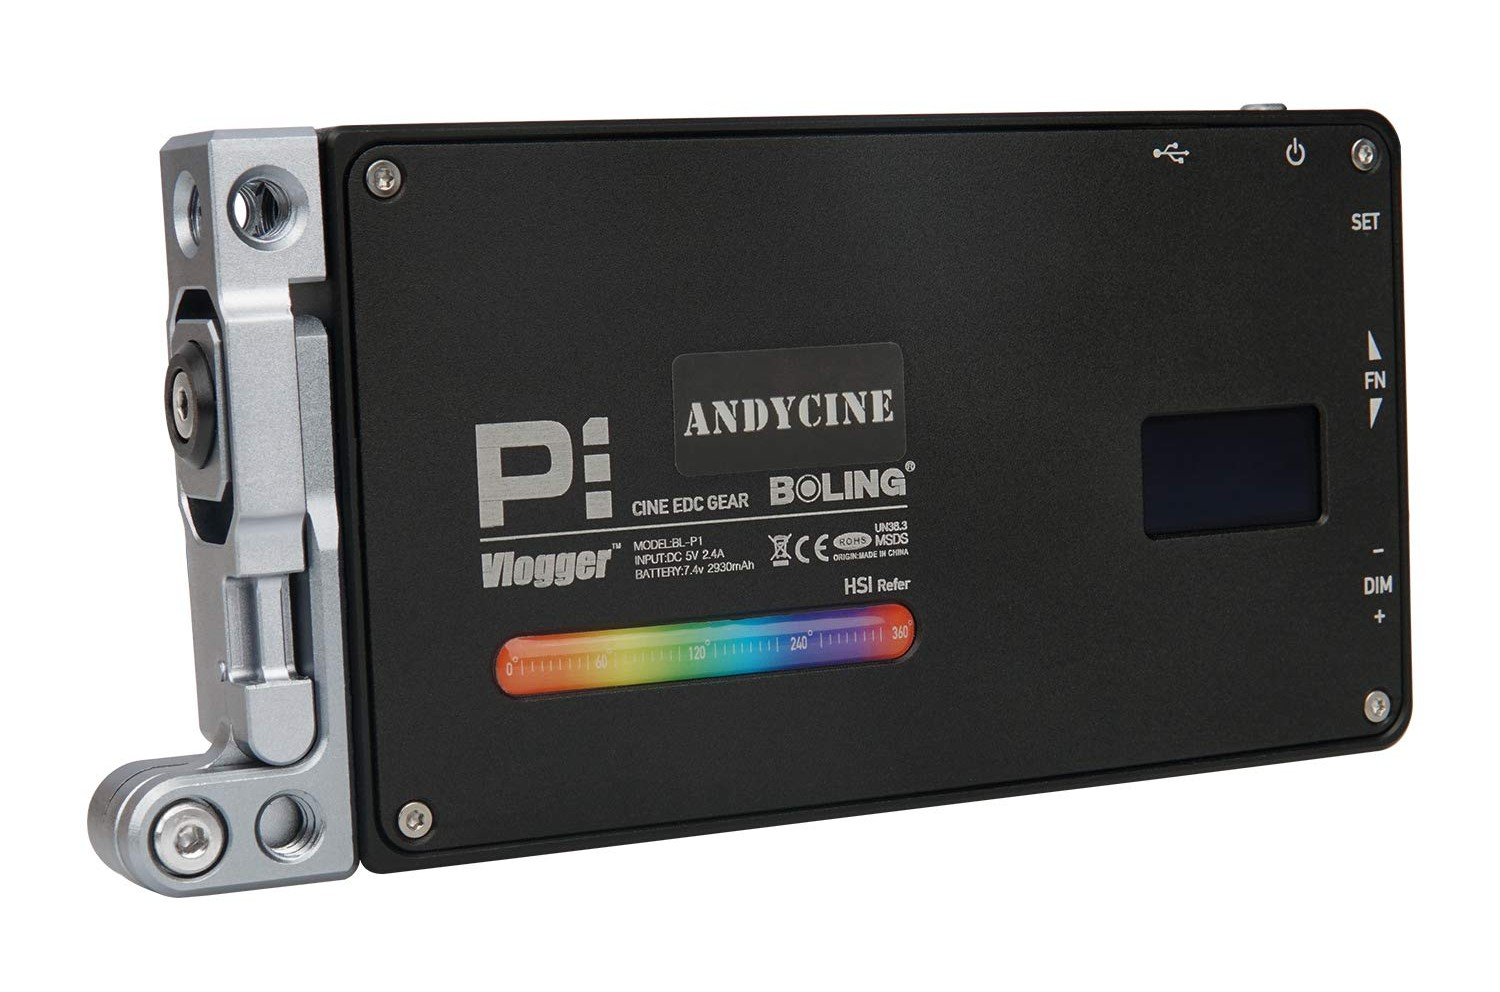 Best Photography Lighting Equipment ANDYCINE Portable Boling P1 RGB Video Light image